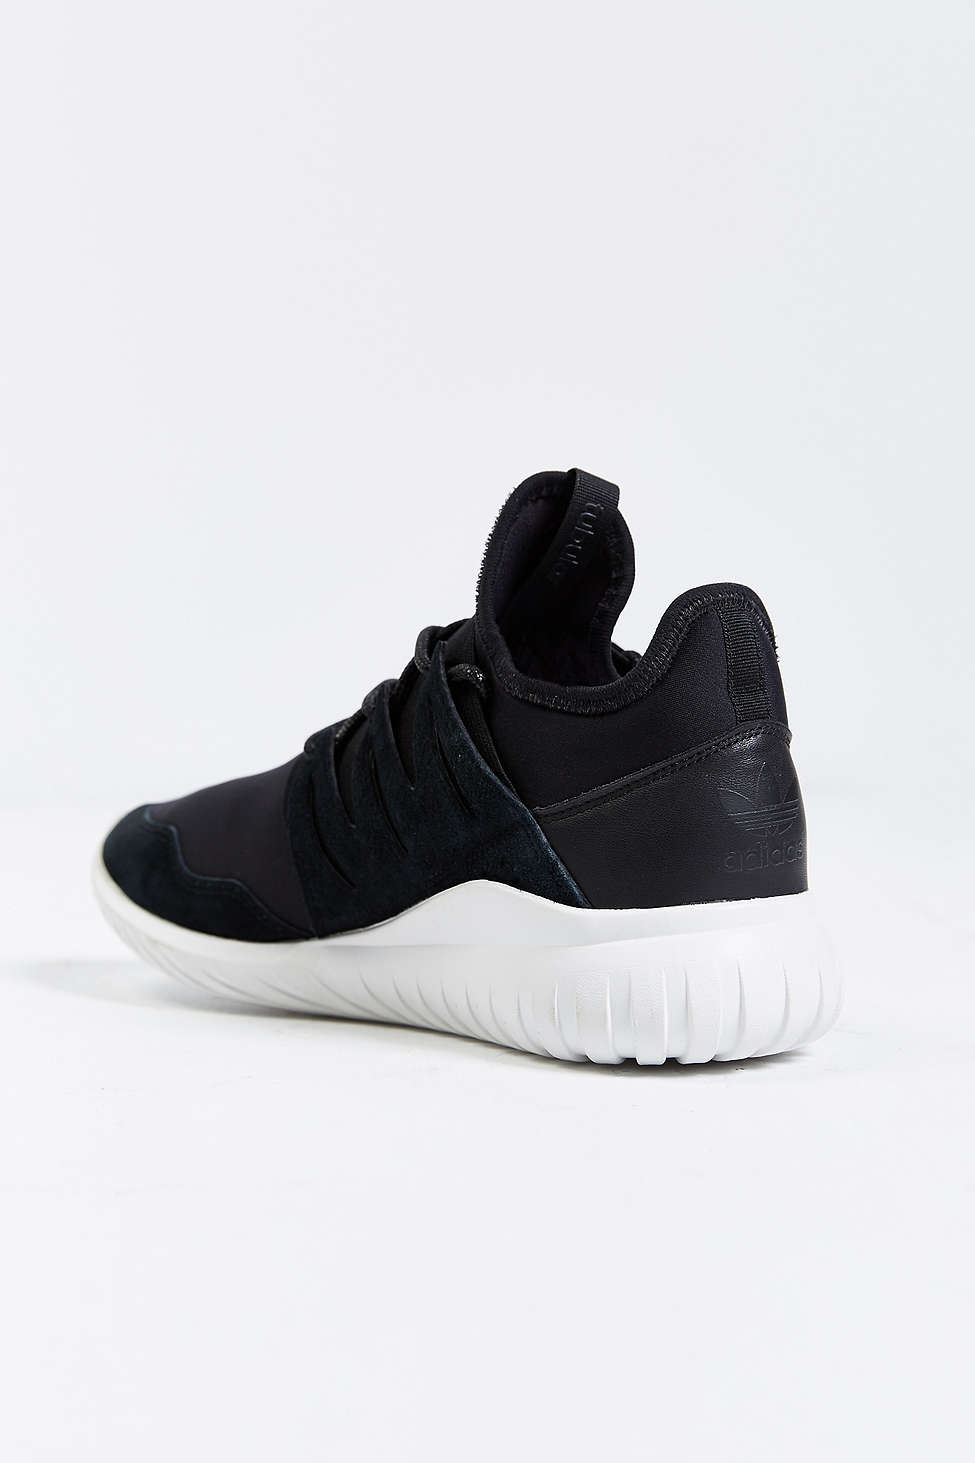 Adidas Tubular Radial Review